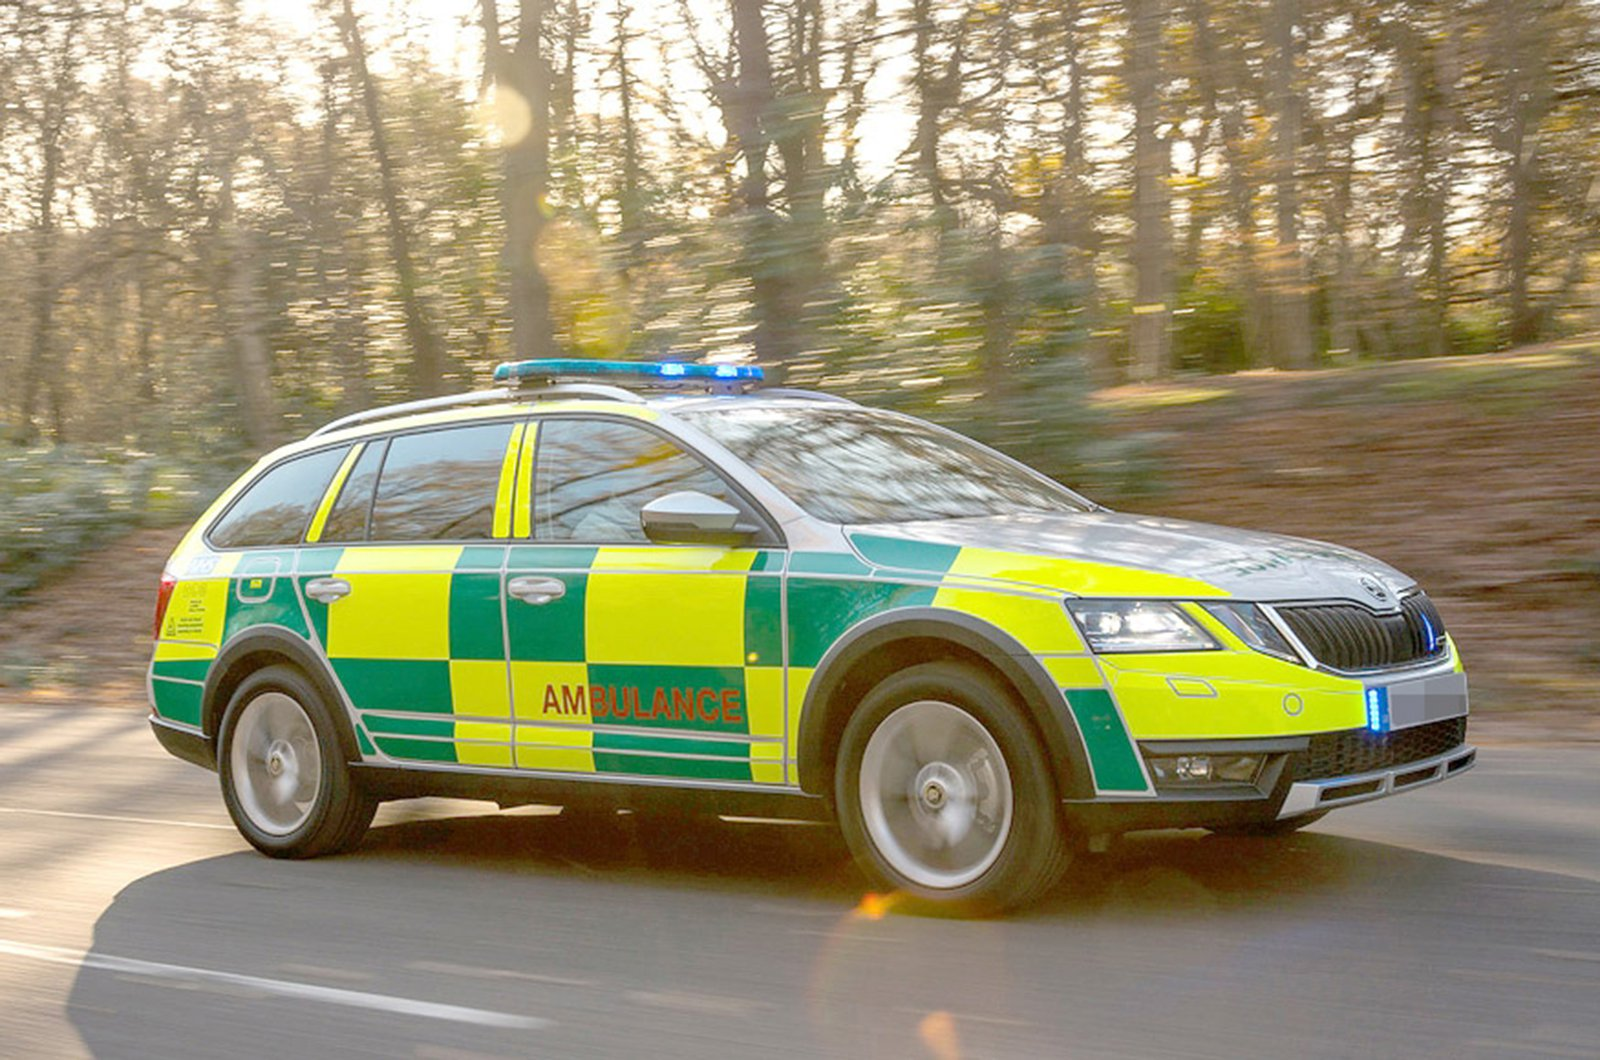 Skoda Octavia Estate Ambulance